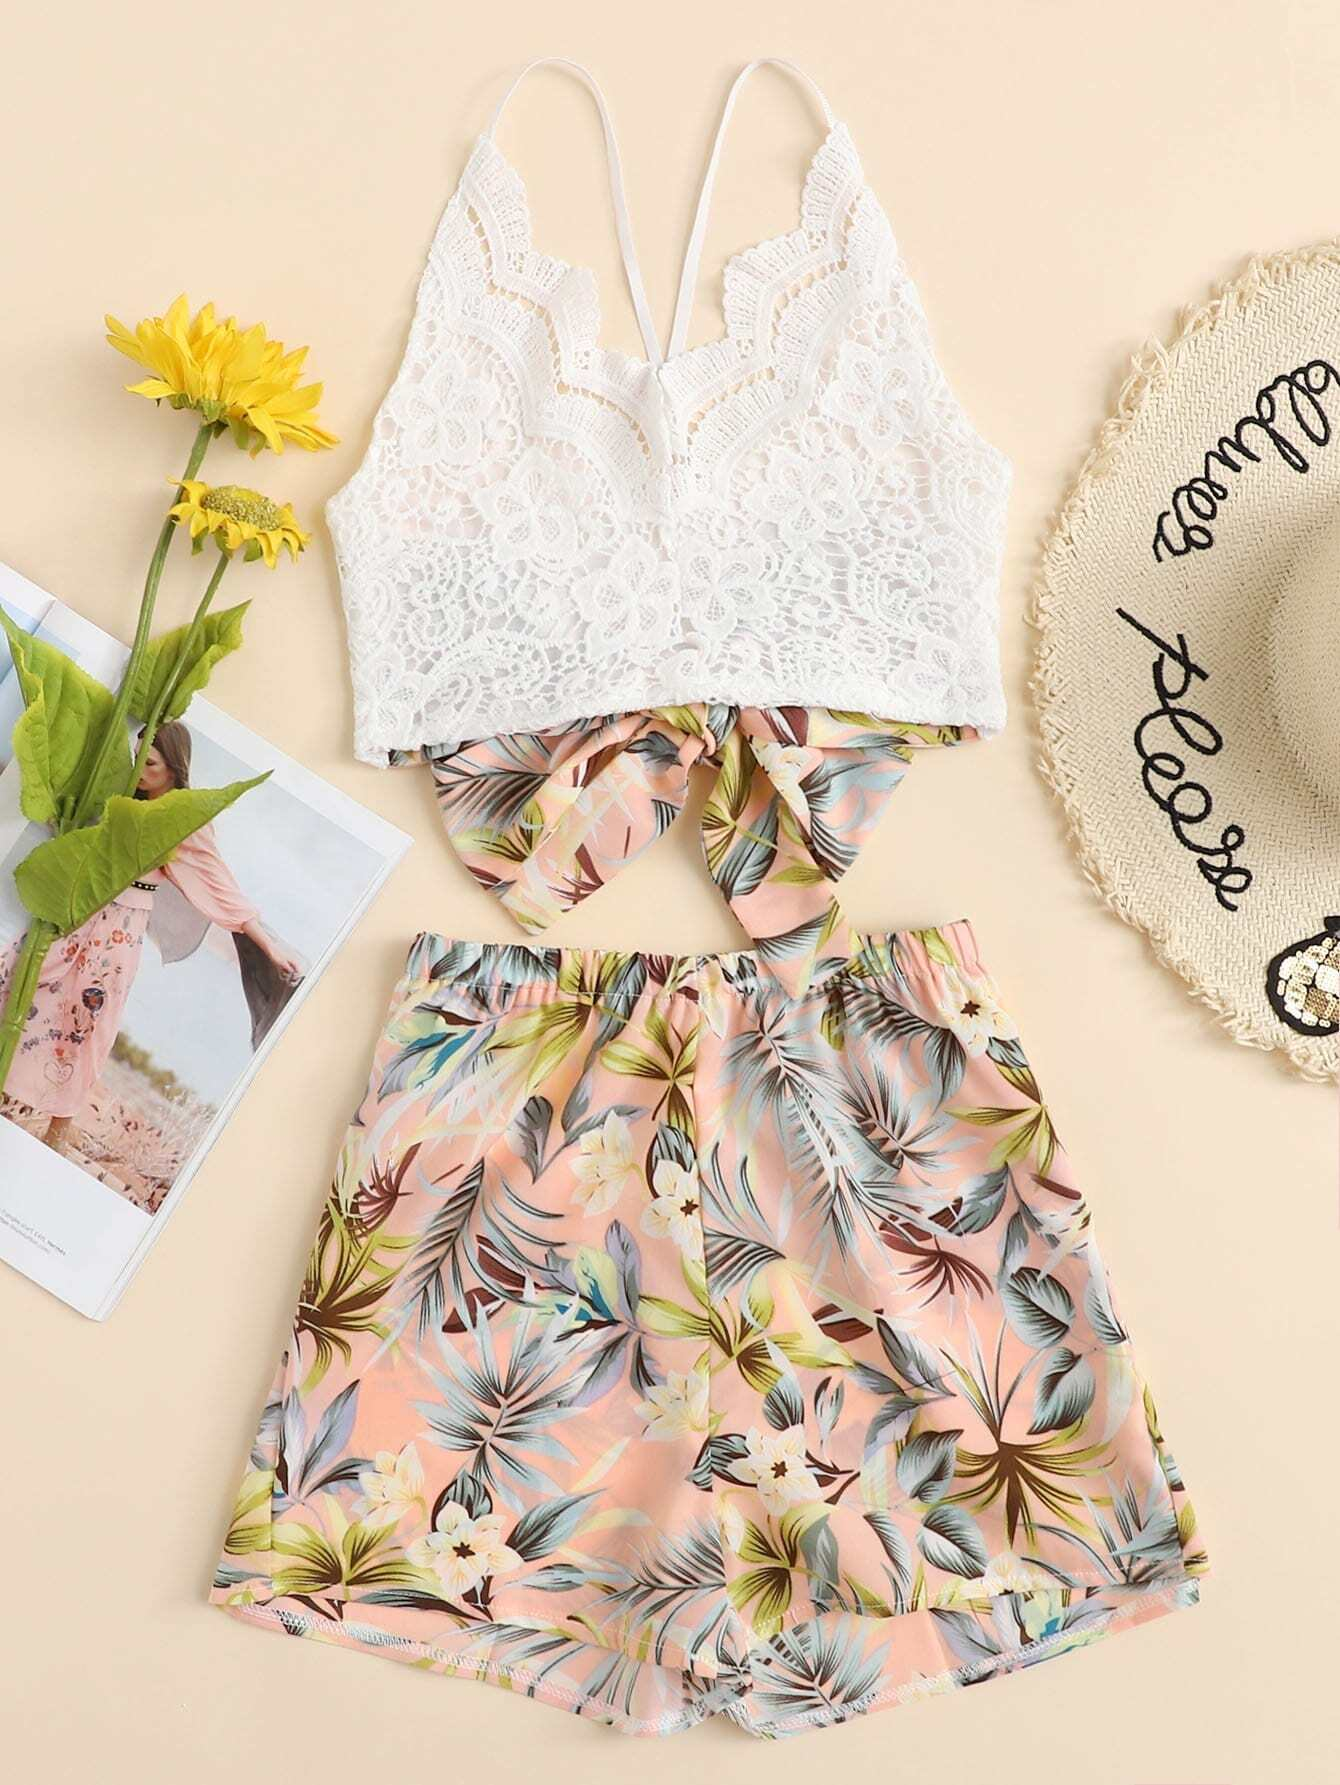 Lace Panel Criss Cross Cami With Floral Shorts lace panel criss cross bow tie back cami top with floral shorts